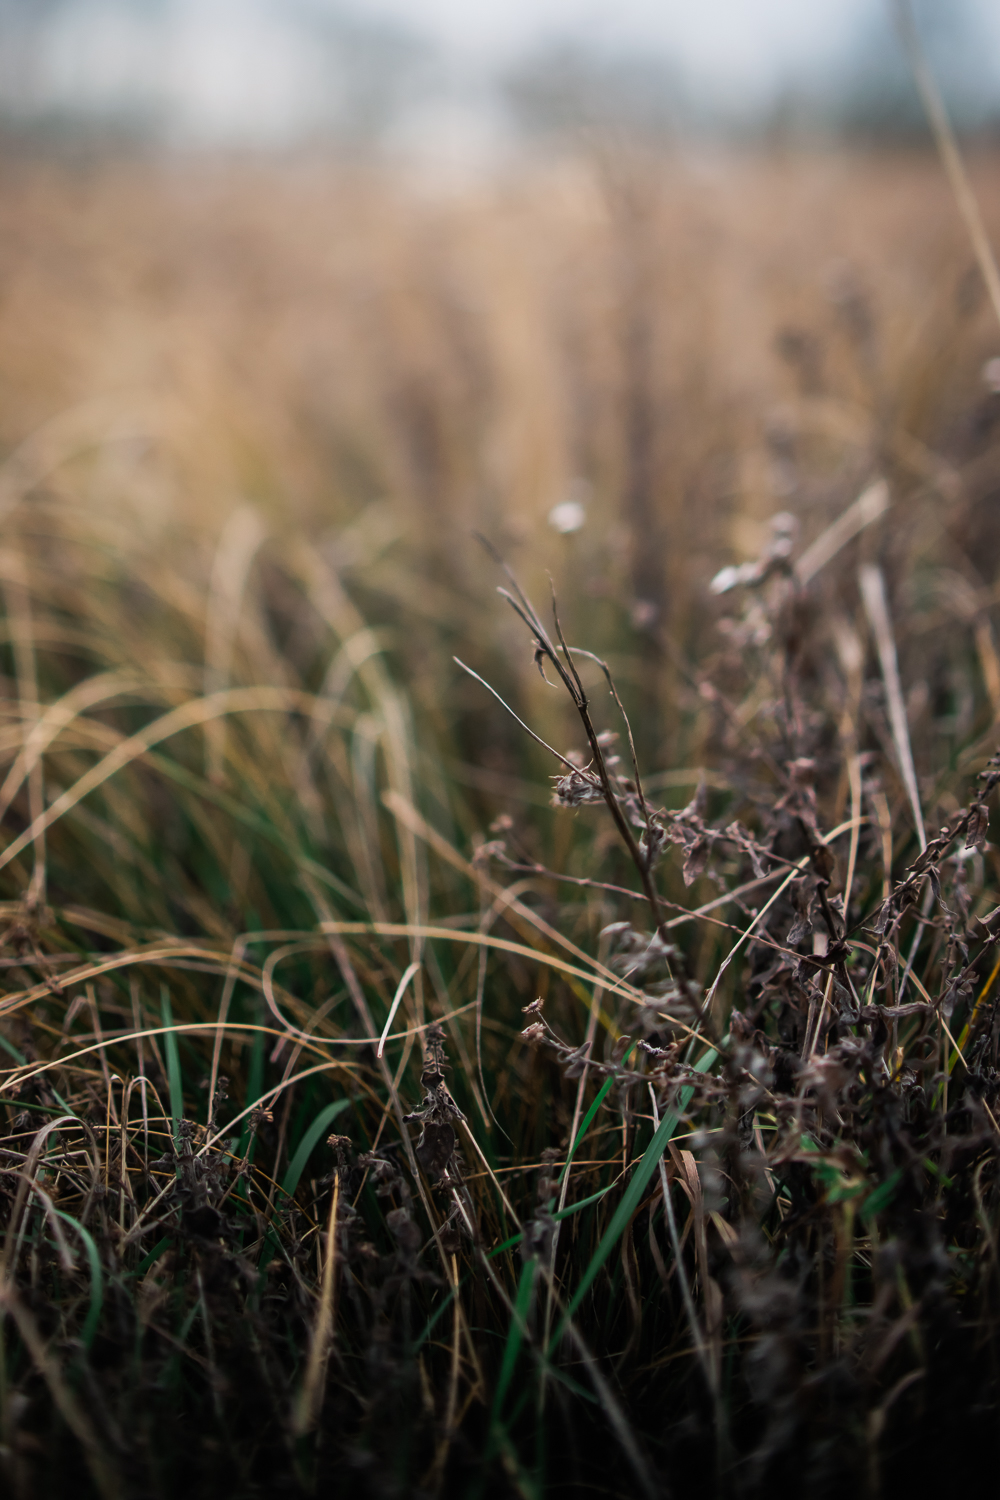 Brown and green vegetation - freelensed photograph - taken in wi